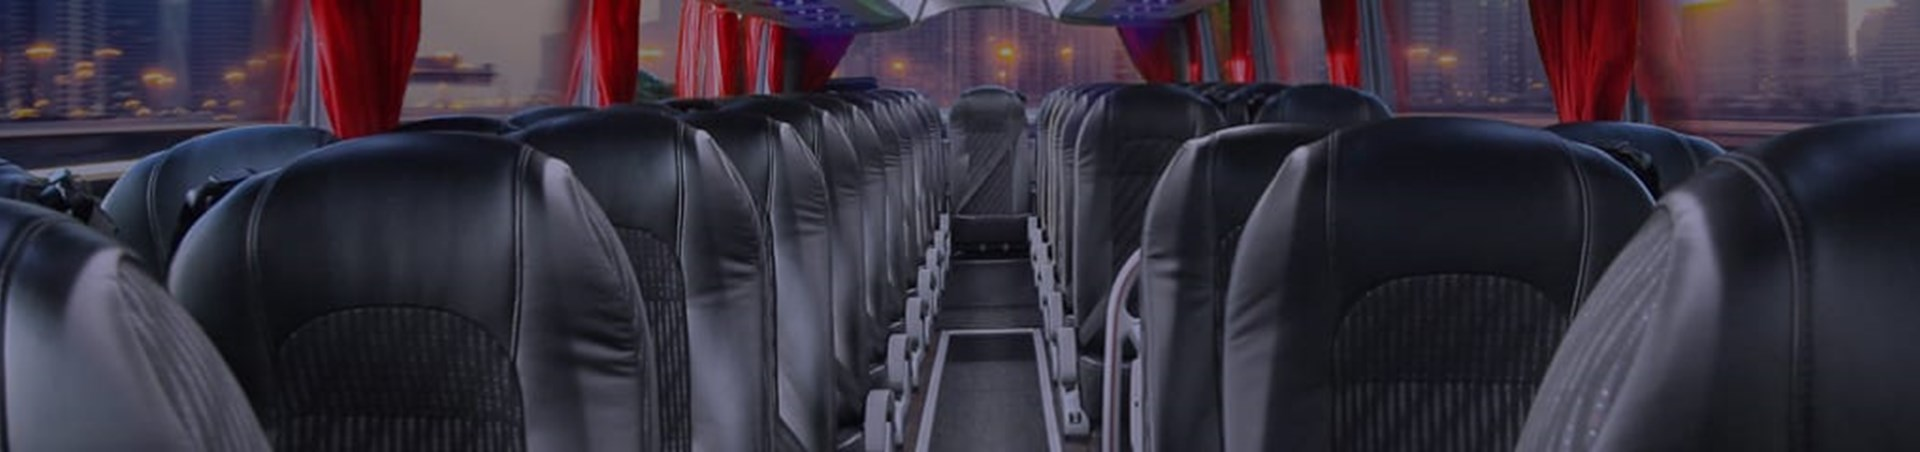 Hire a National Express coach from your private or business needs